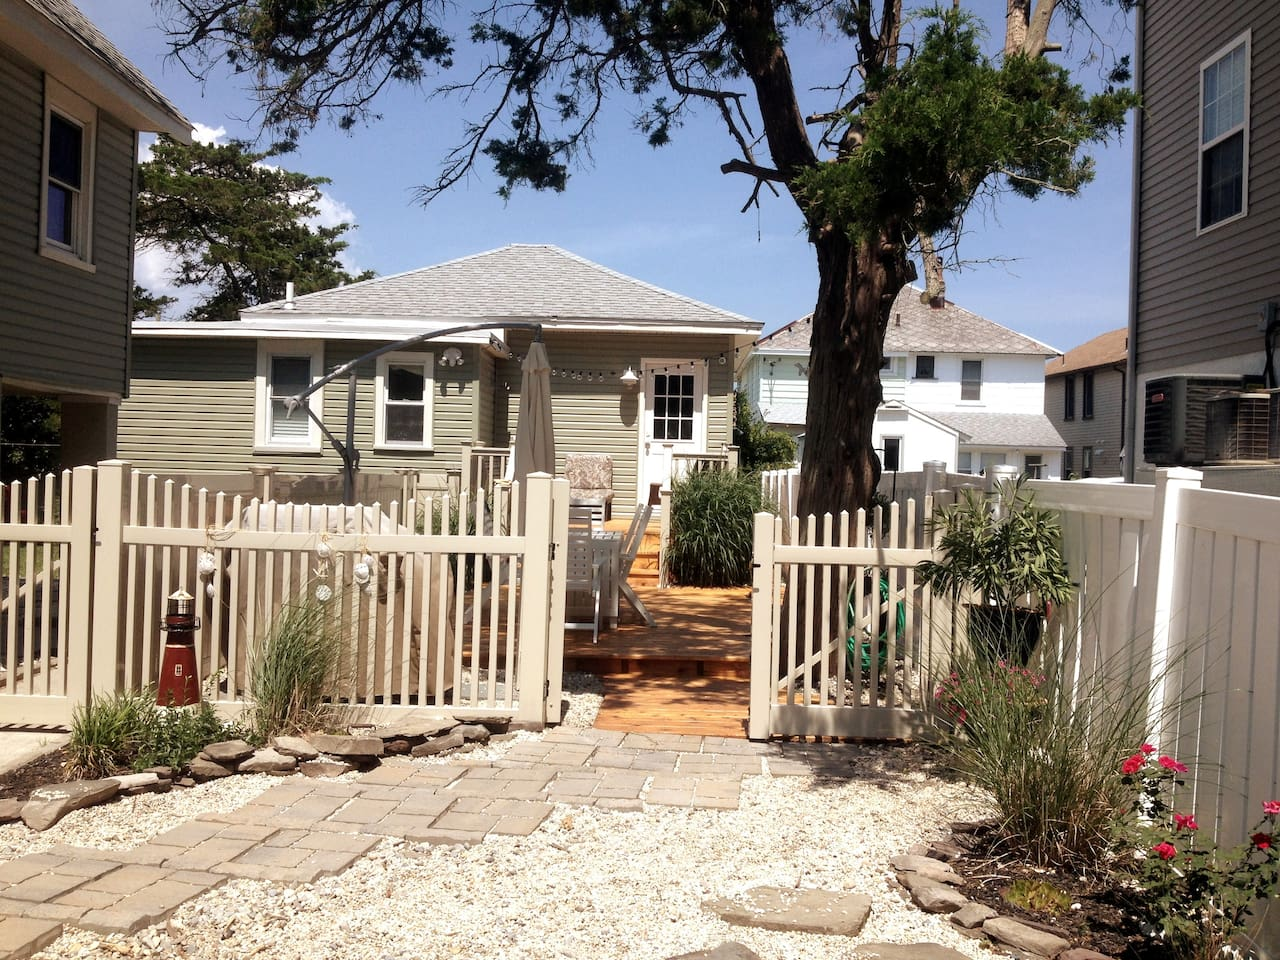 Spacious and private front deck with comfy rocking chairs, dining set, gas grill and outdoor shower.